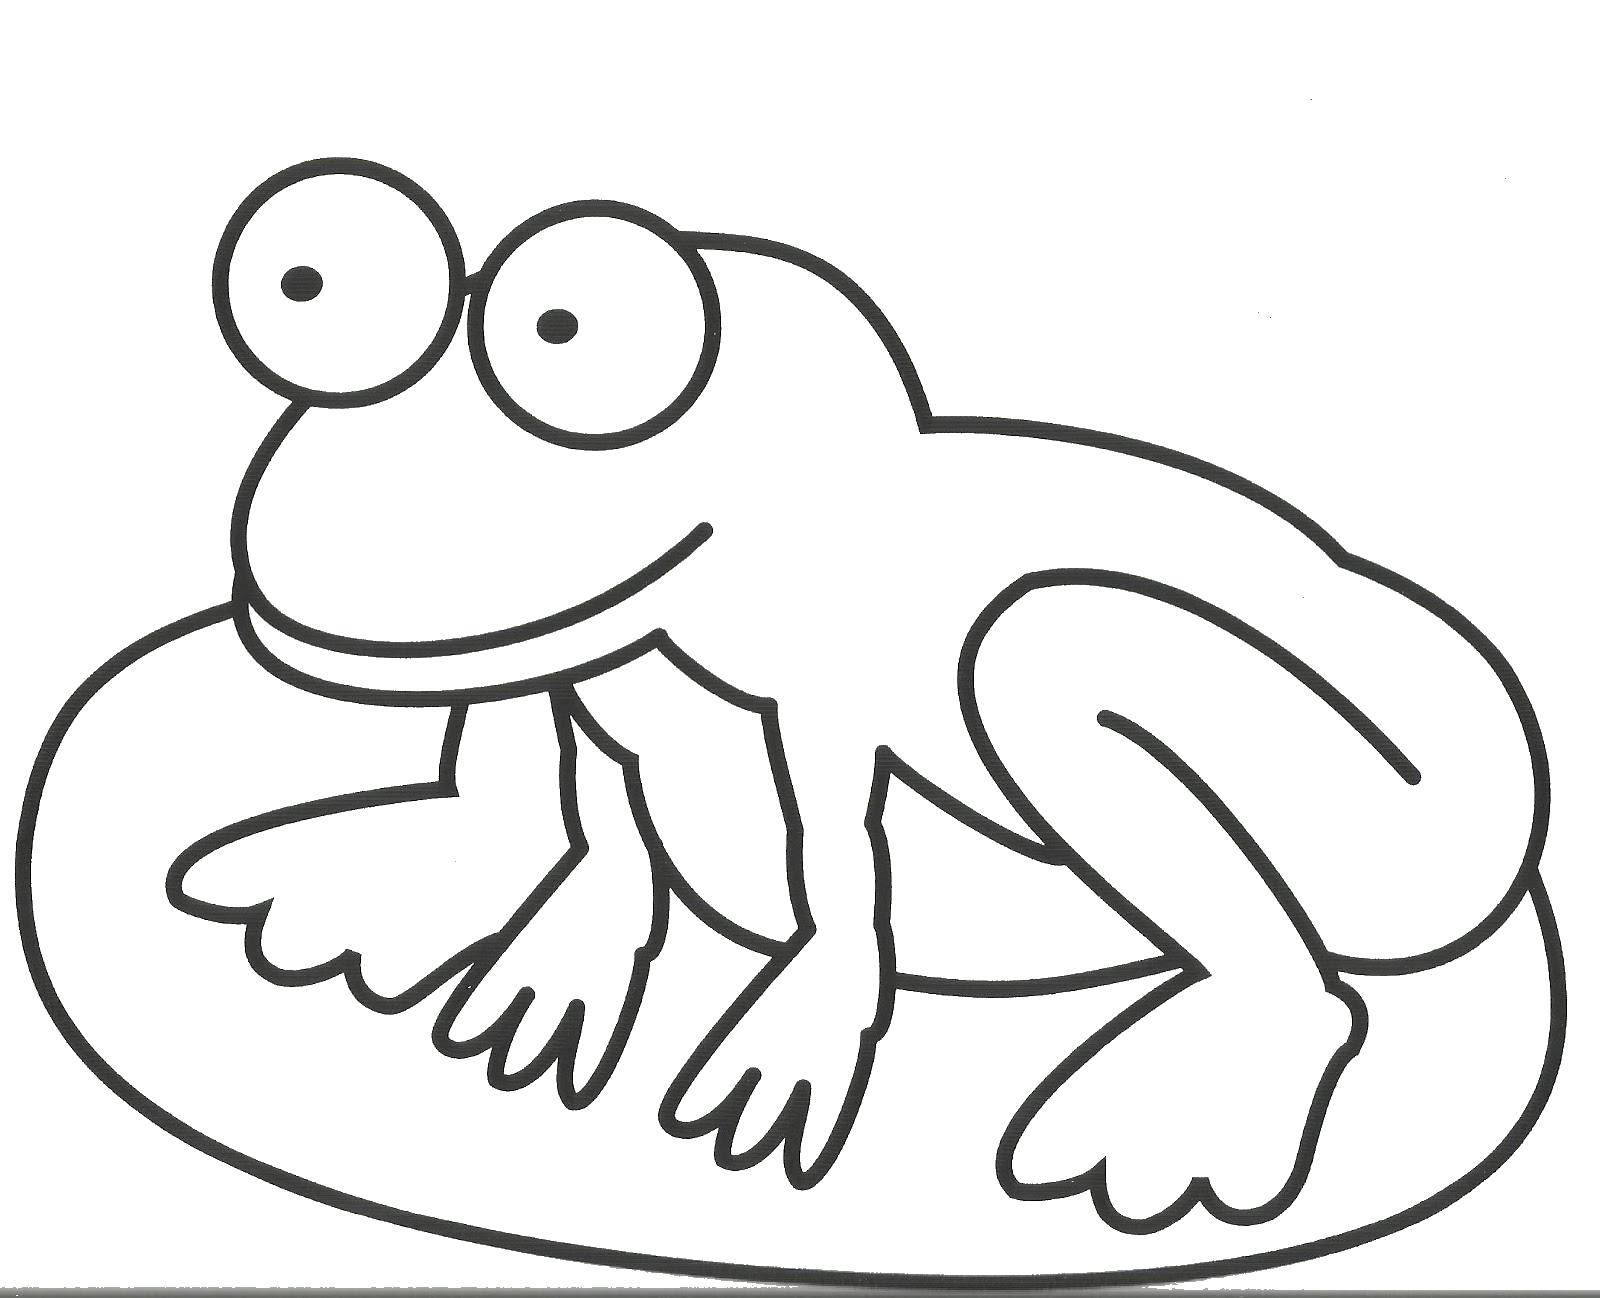 Coloring Frog. Category amphibians. Tags:  frog, stone.